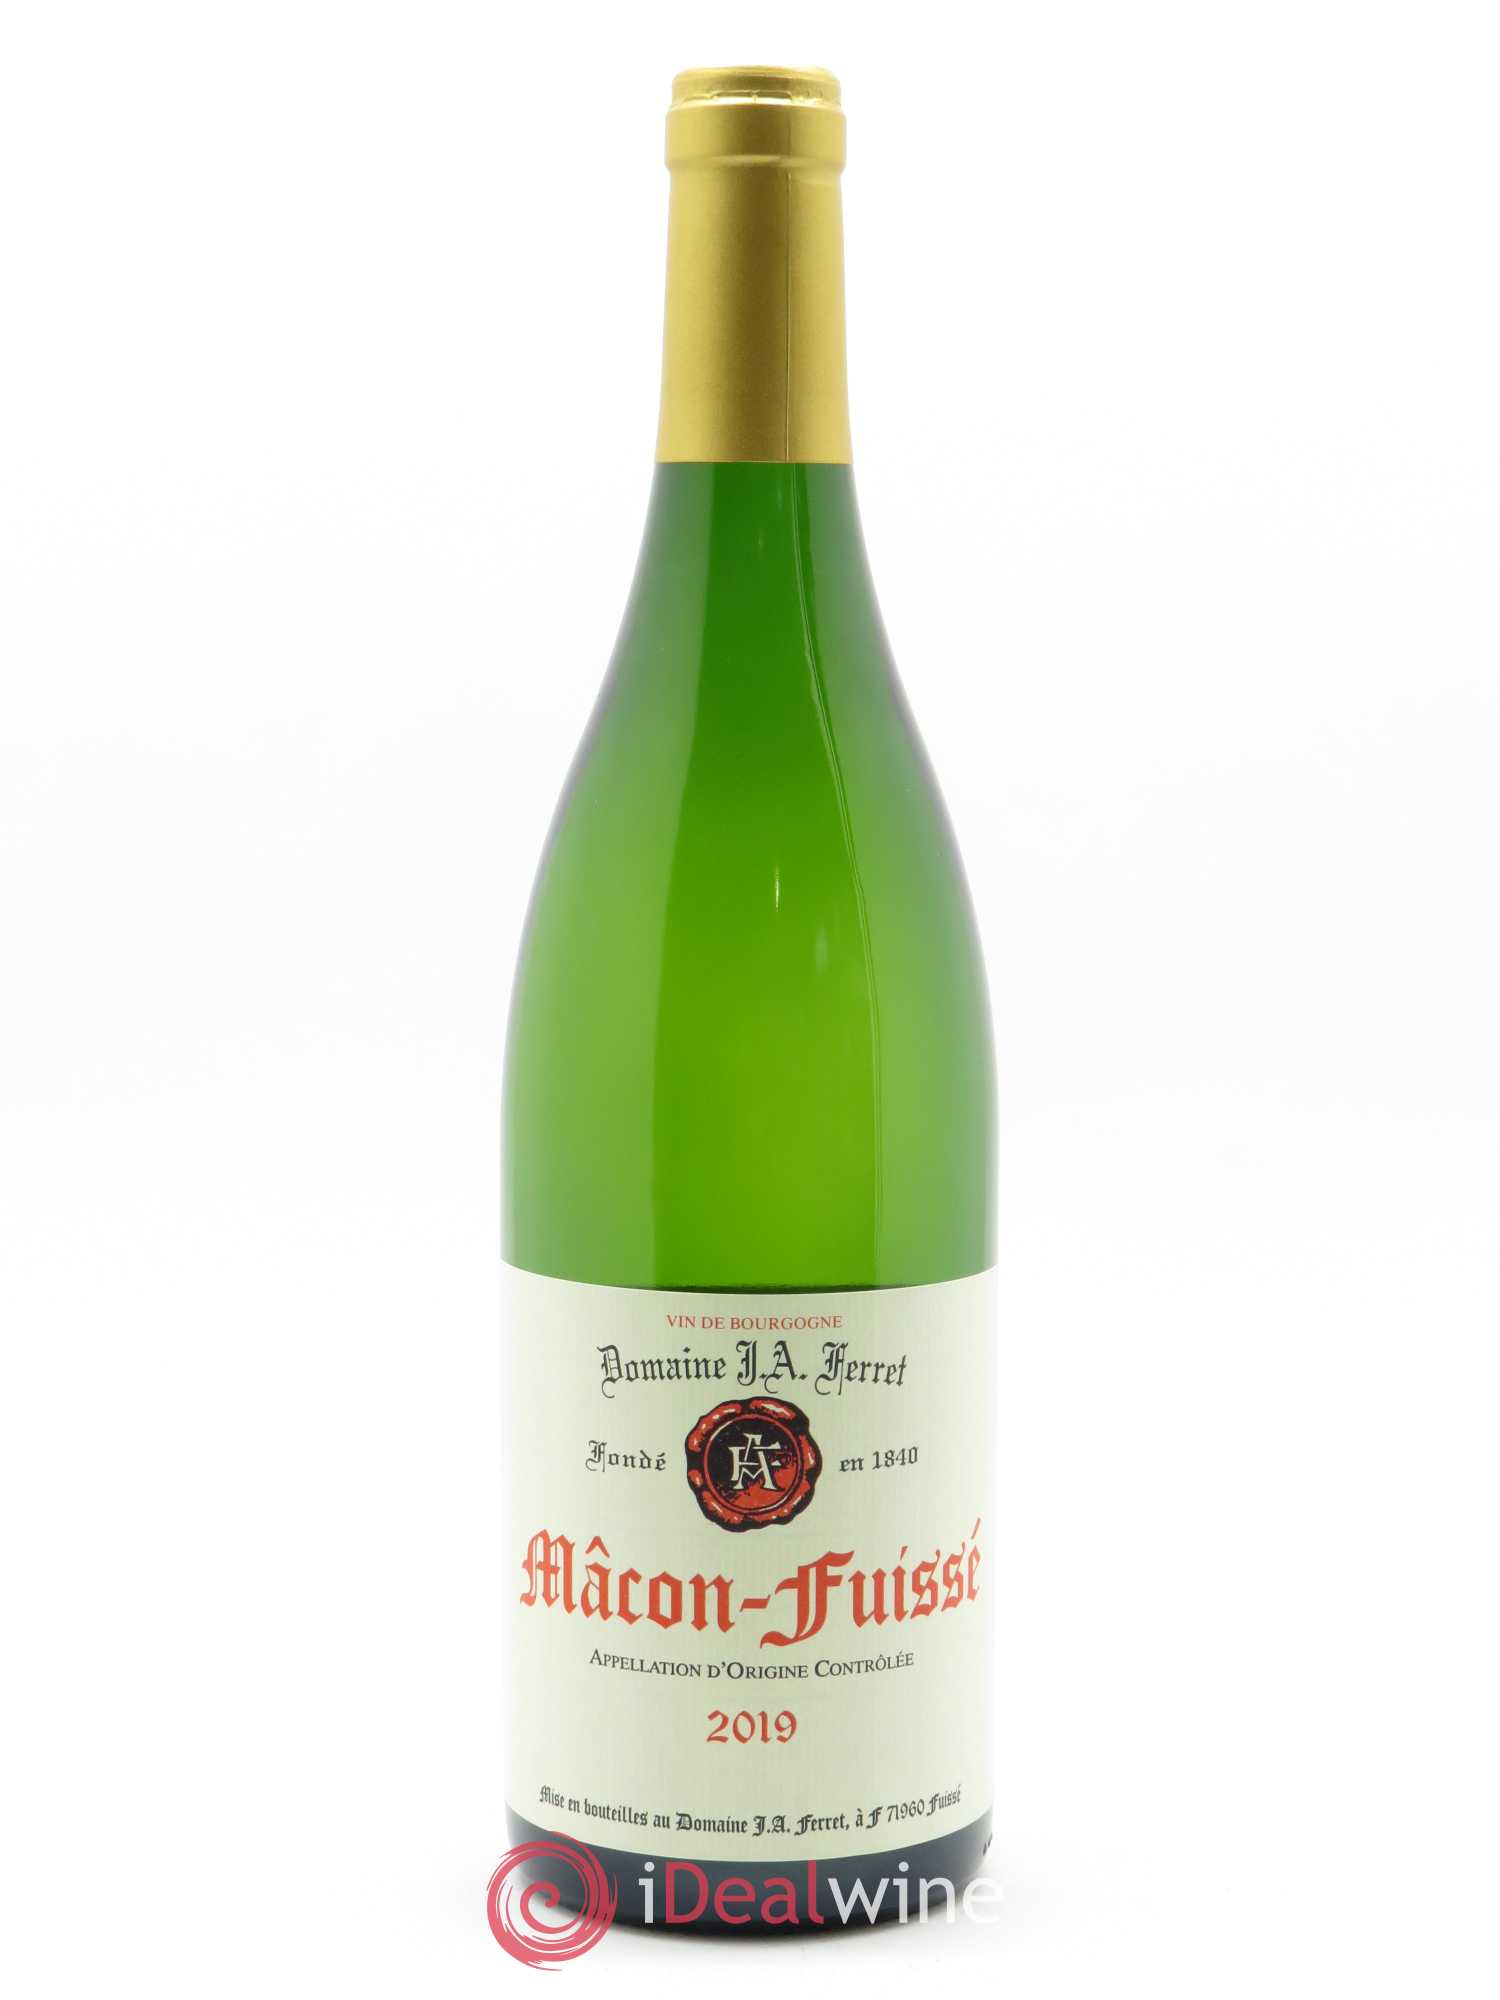 Mâcon-Fuissé J.A. Ferret (Domaine)  2019 - Lot of 1 Bottle